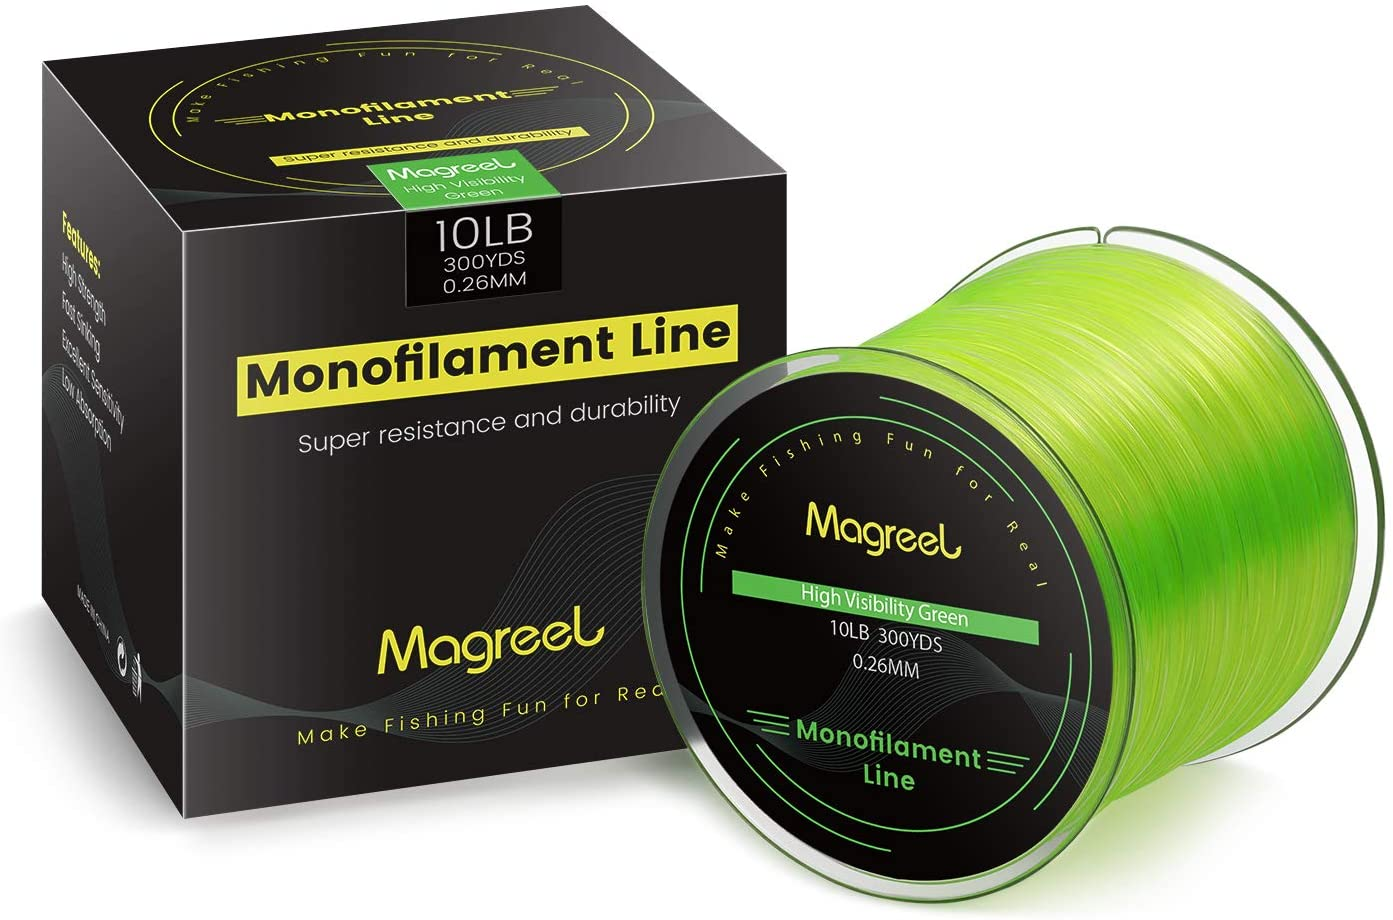 Magreel Monofilament Fishing Line Abrasion Resistant Leader Line Strong Nylon Material Fishing Line Ice Fishing Line, 6LB-30LB, 300Yds